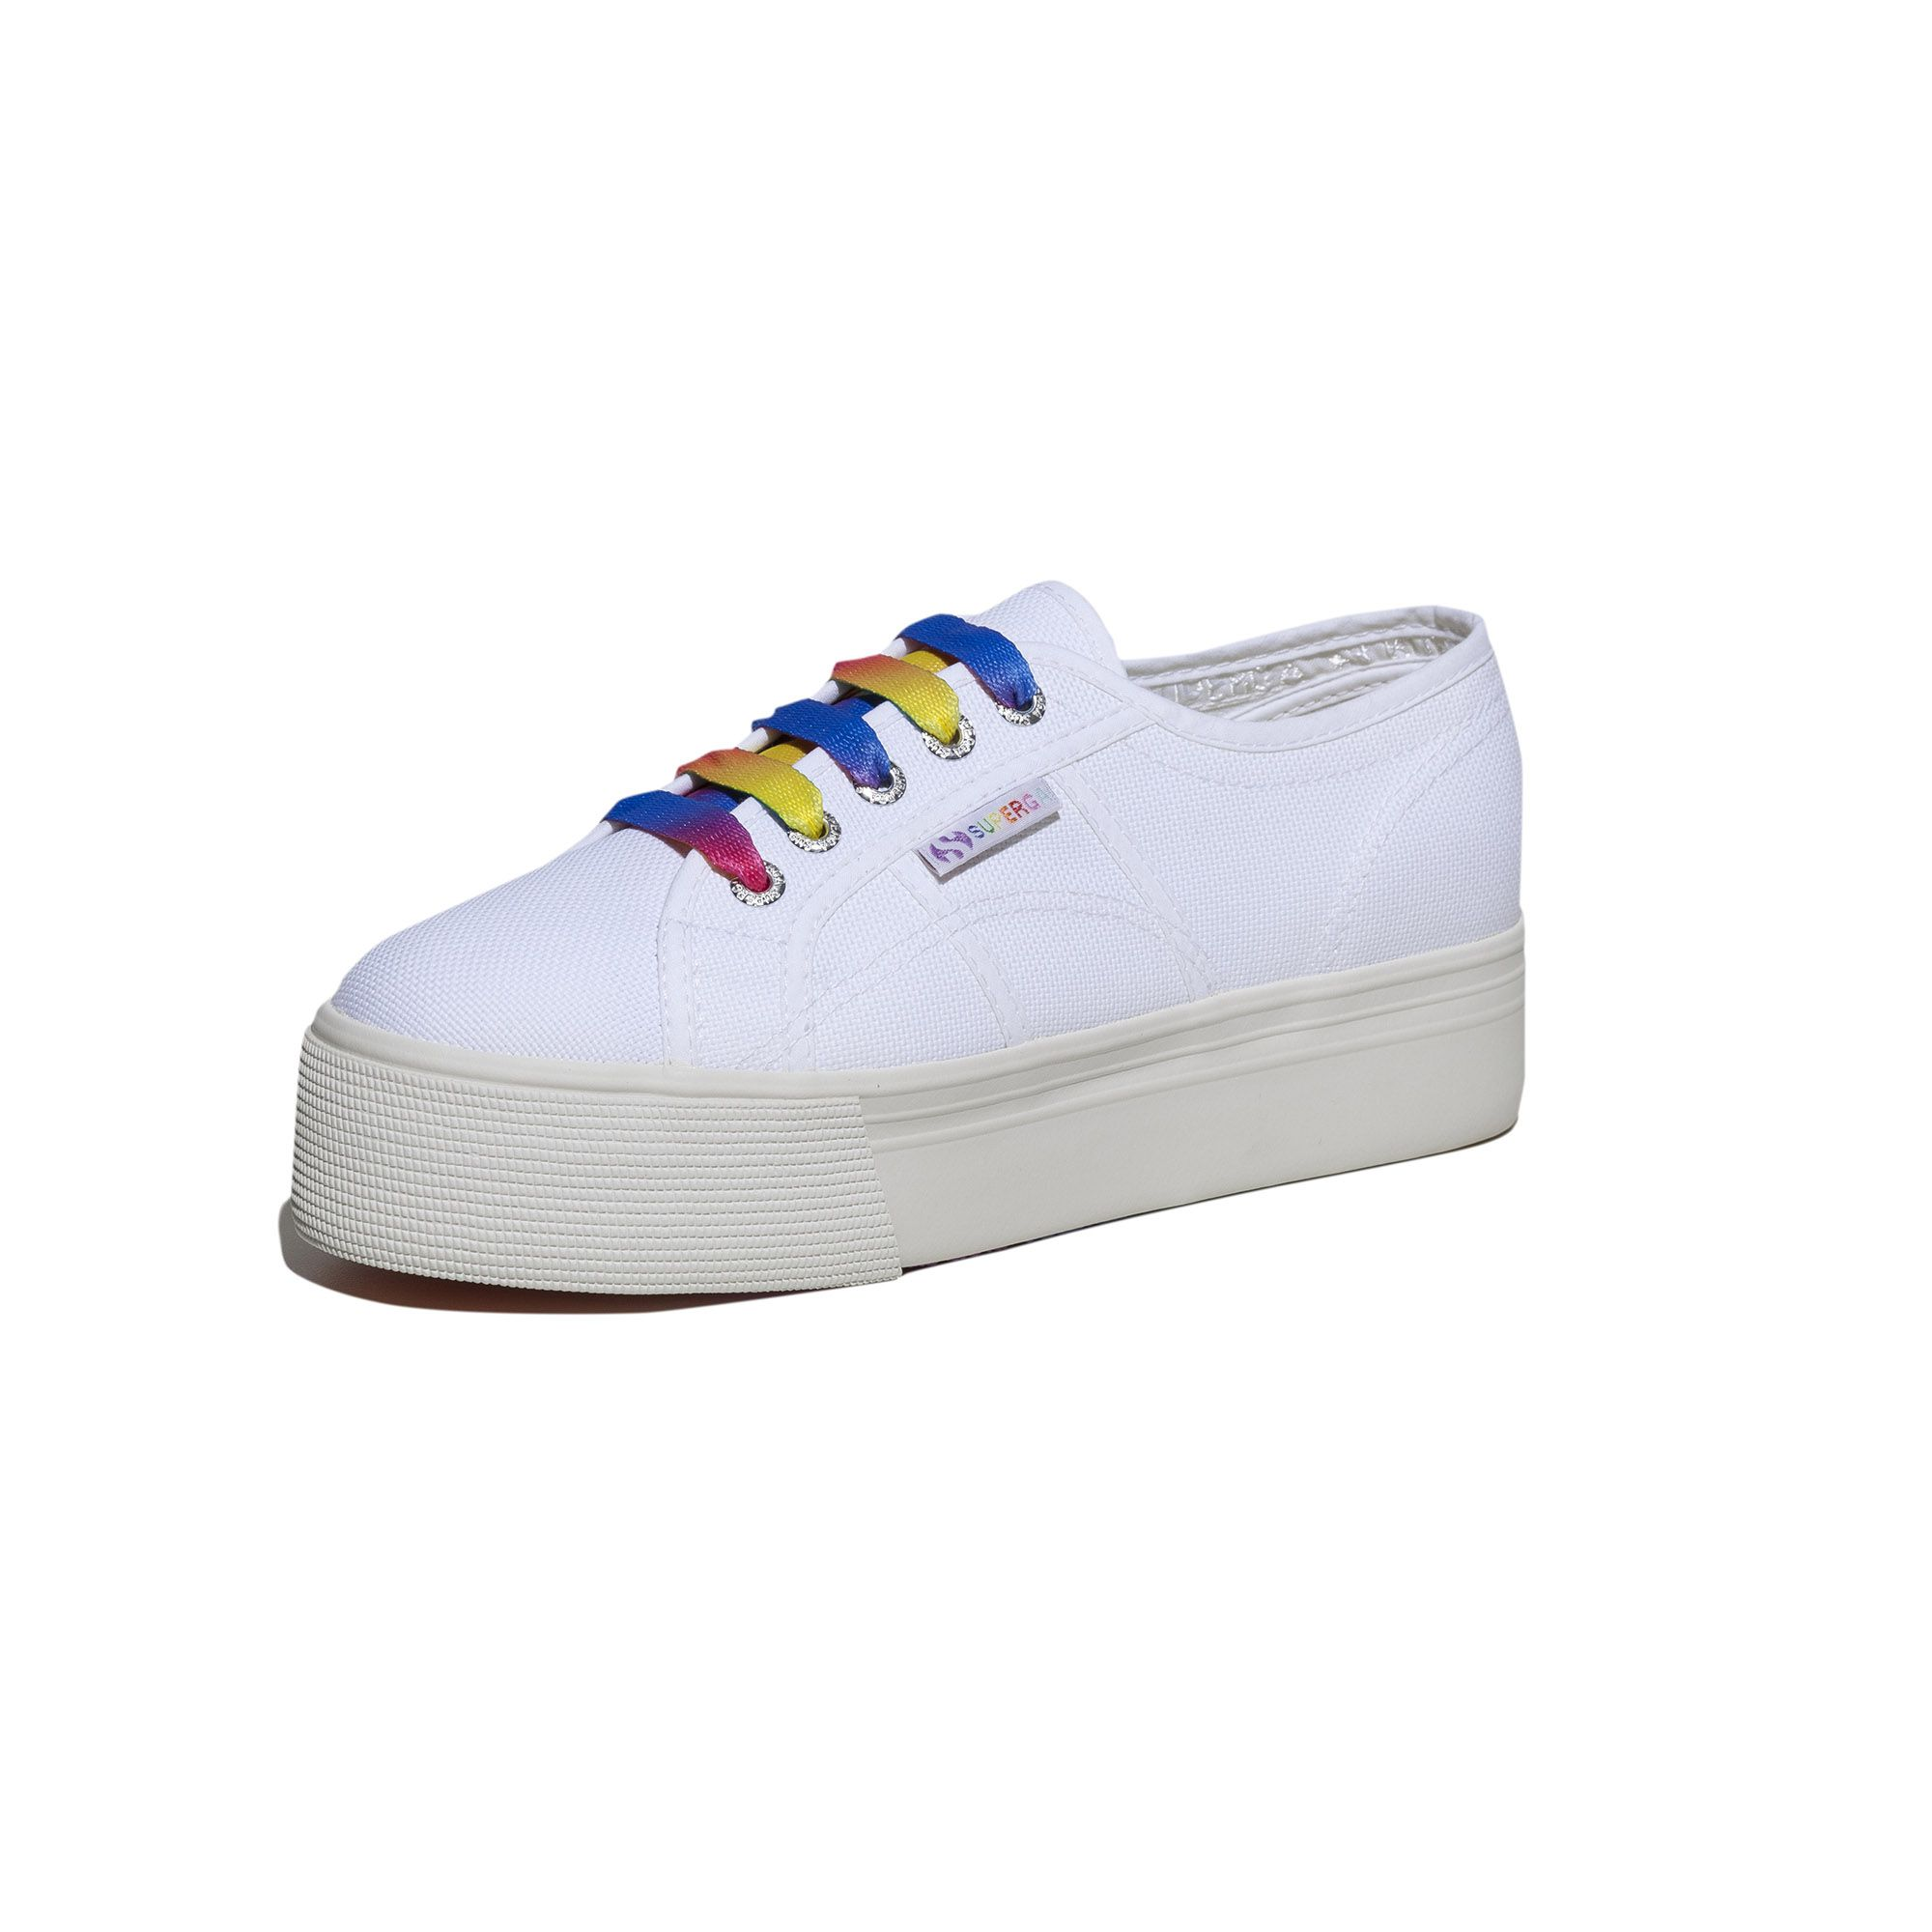 2790 COTU MULTICOLORS OUTSOLE WHITE